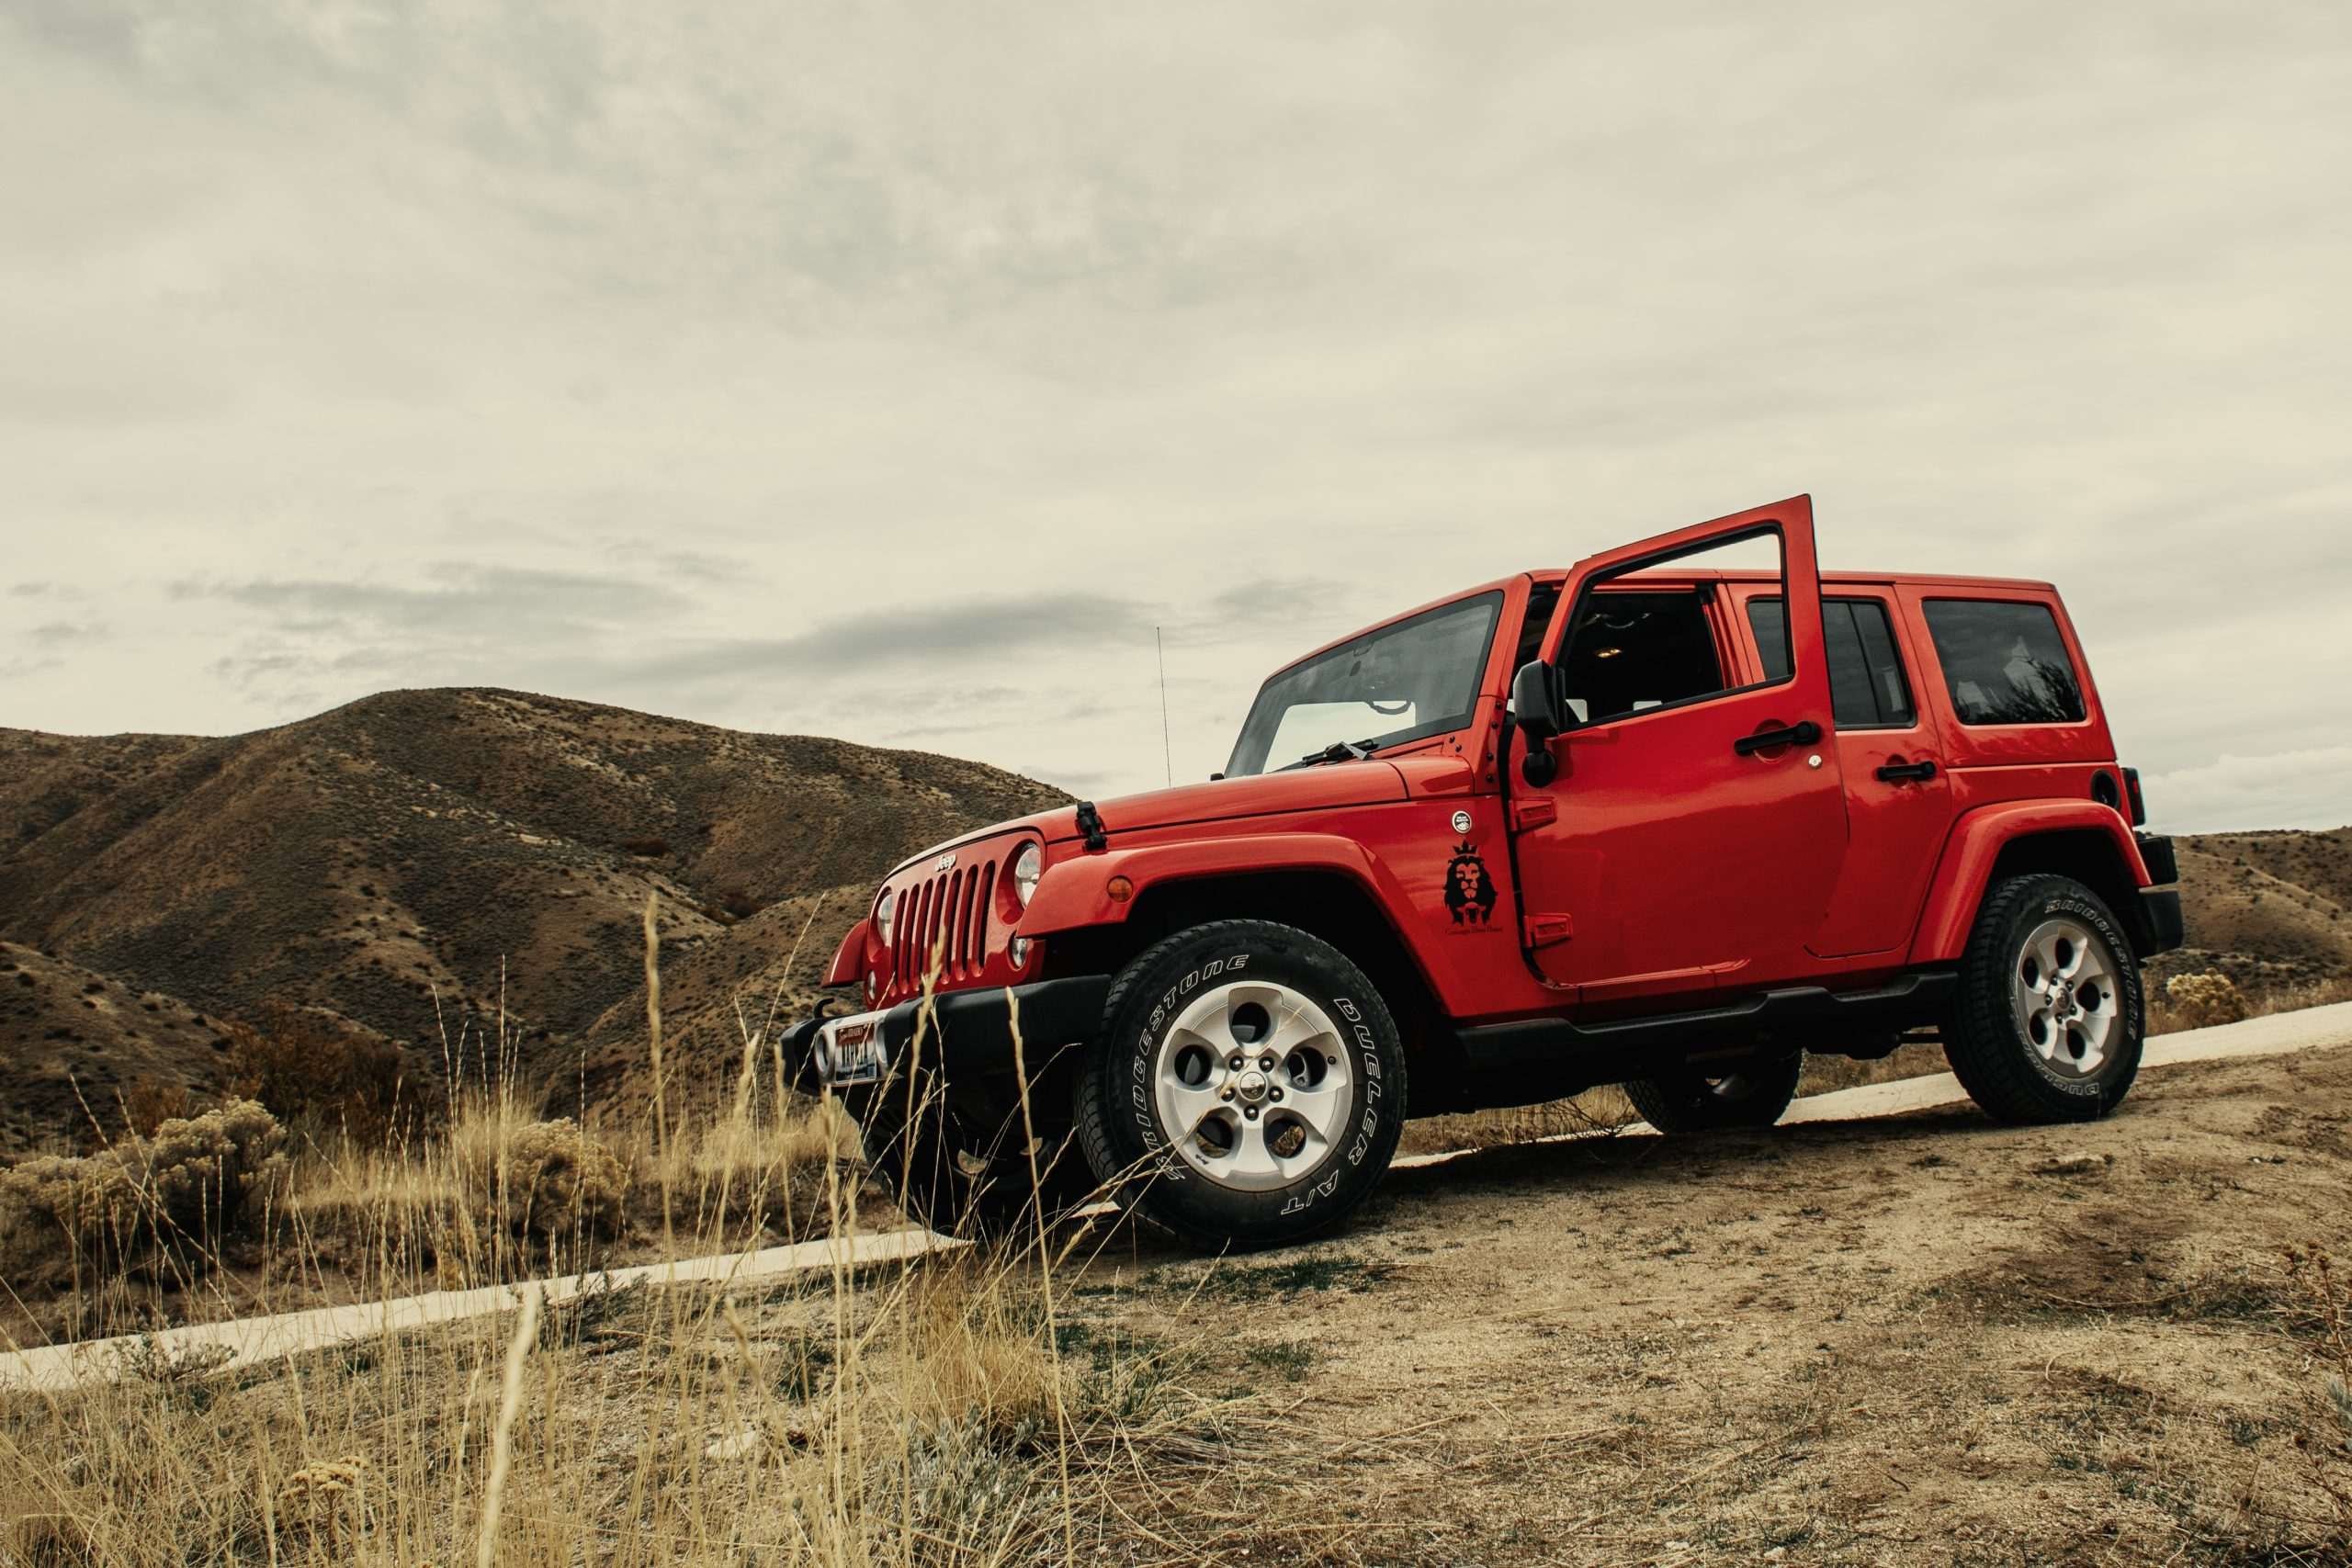 Jeep Gladiator: Features Of This Off-Road Beast